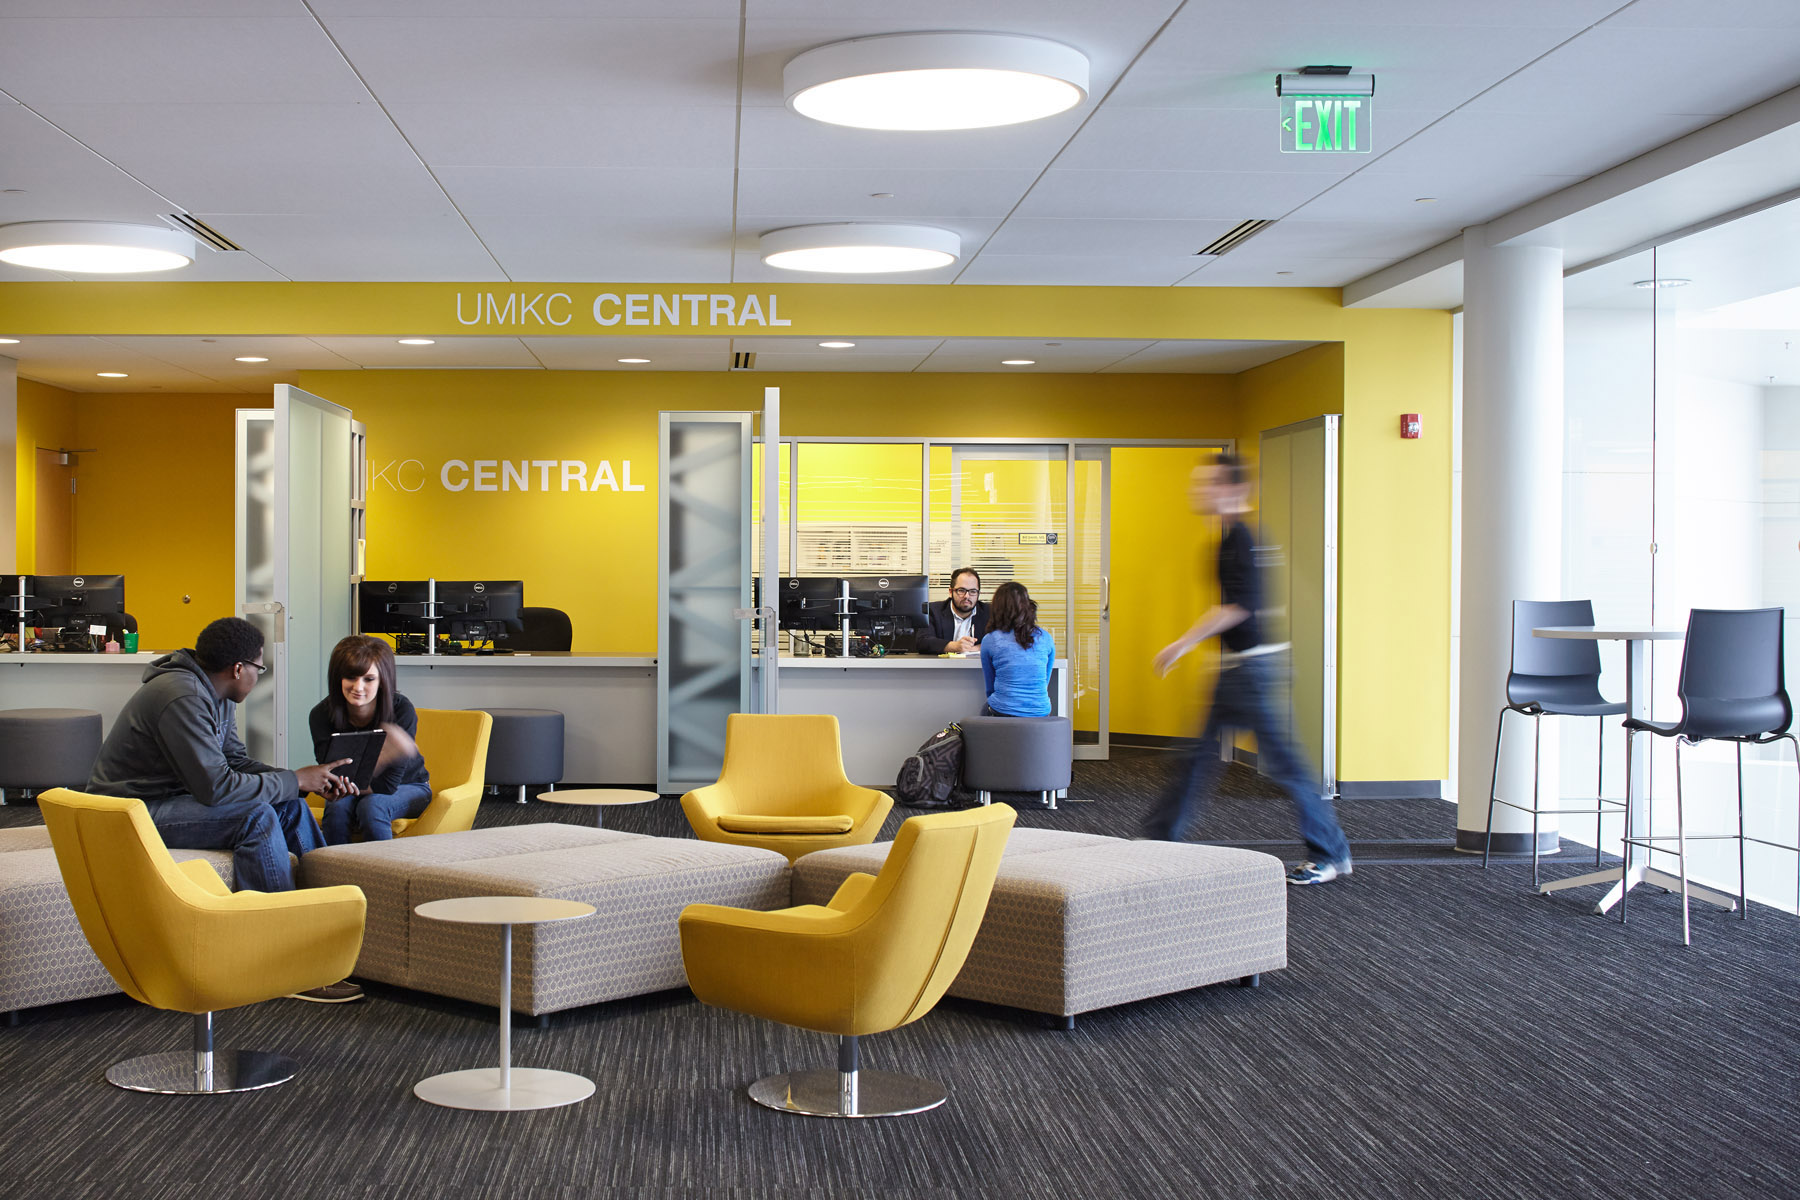 The design of the UMKC Atterbury Student Success Center was conceived to help break down students' intimidation to access services such as tutoring and advising. We organized space to blur the lines between administrative, academic and support services using vibrant lounge space as the binding medium (image credit: Mike Sinclair).